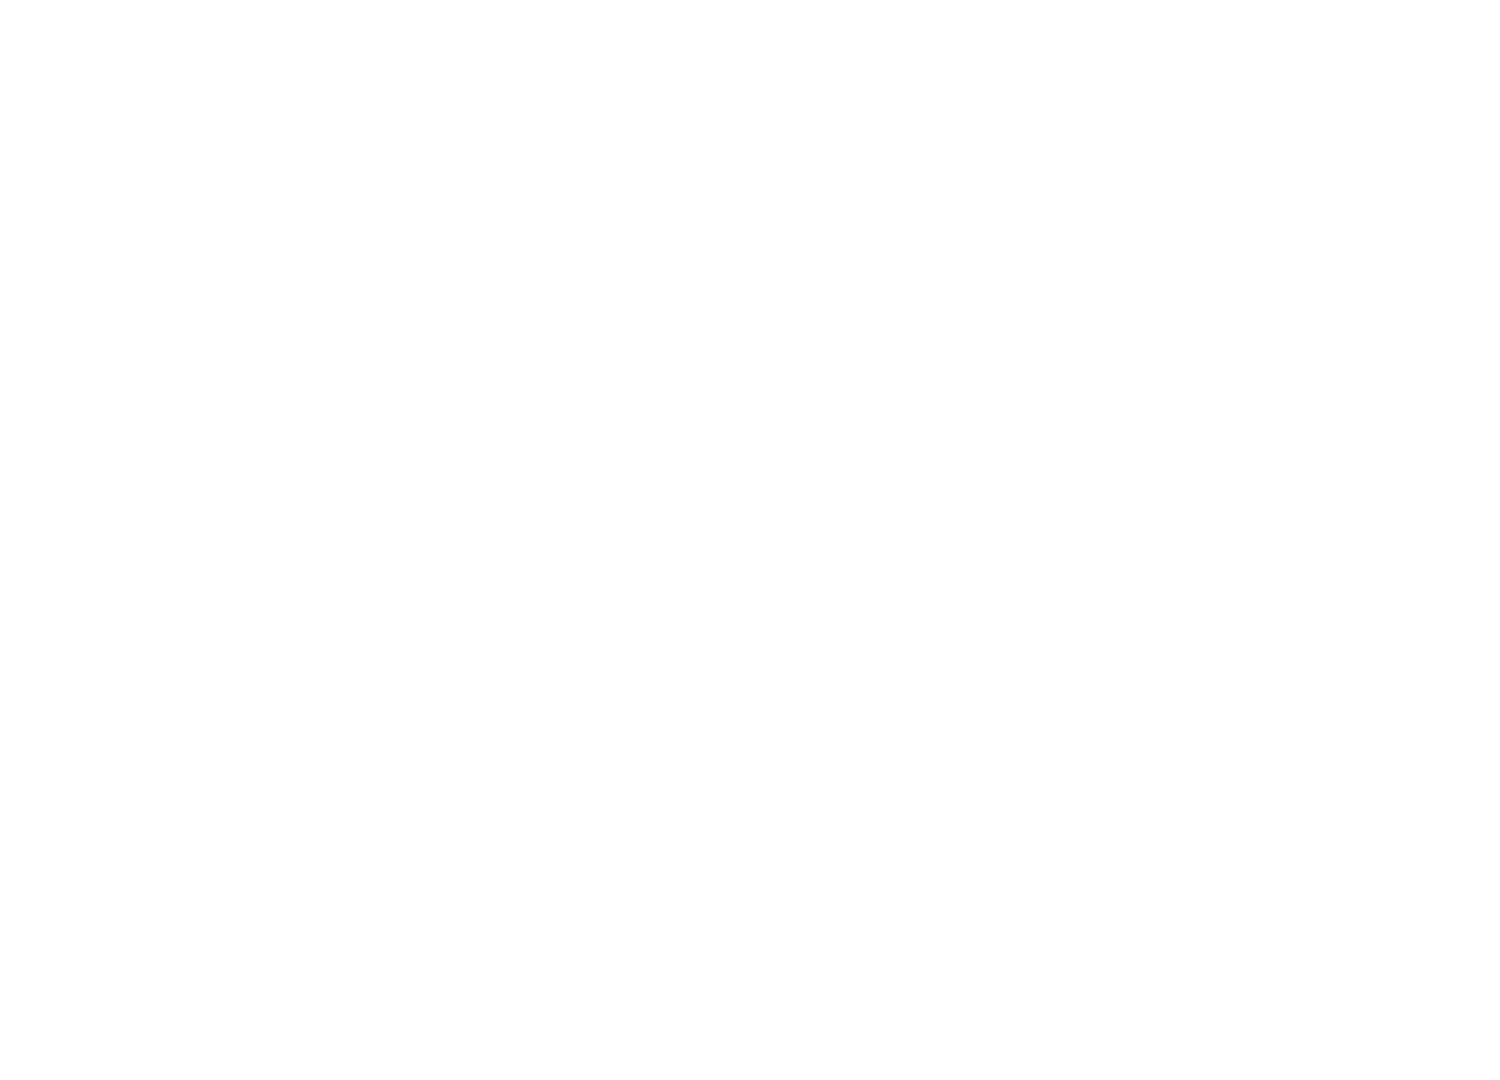 Station View Kennels